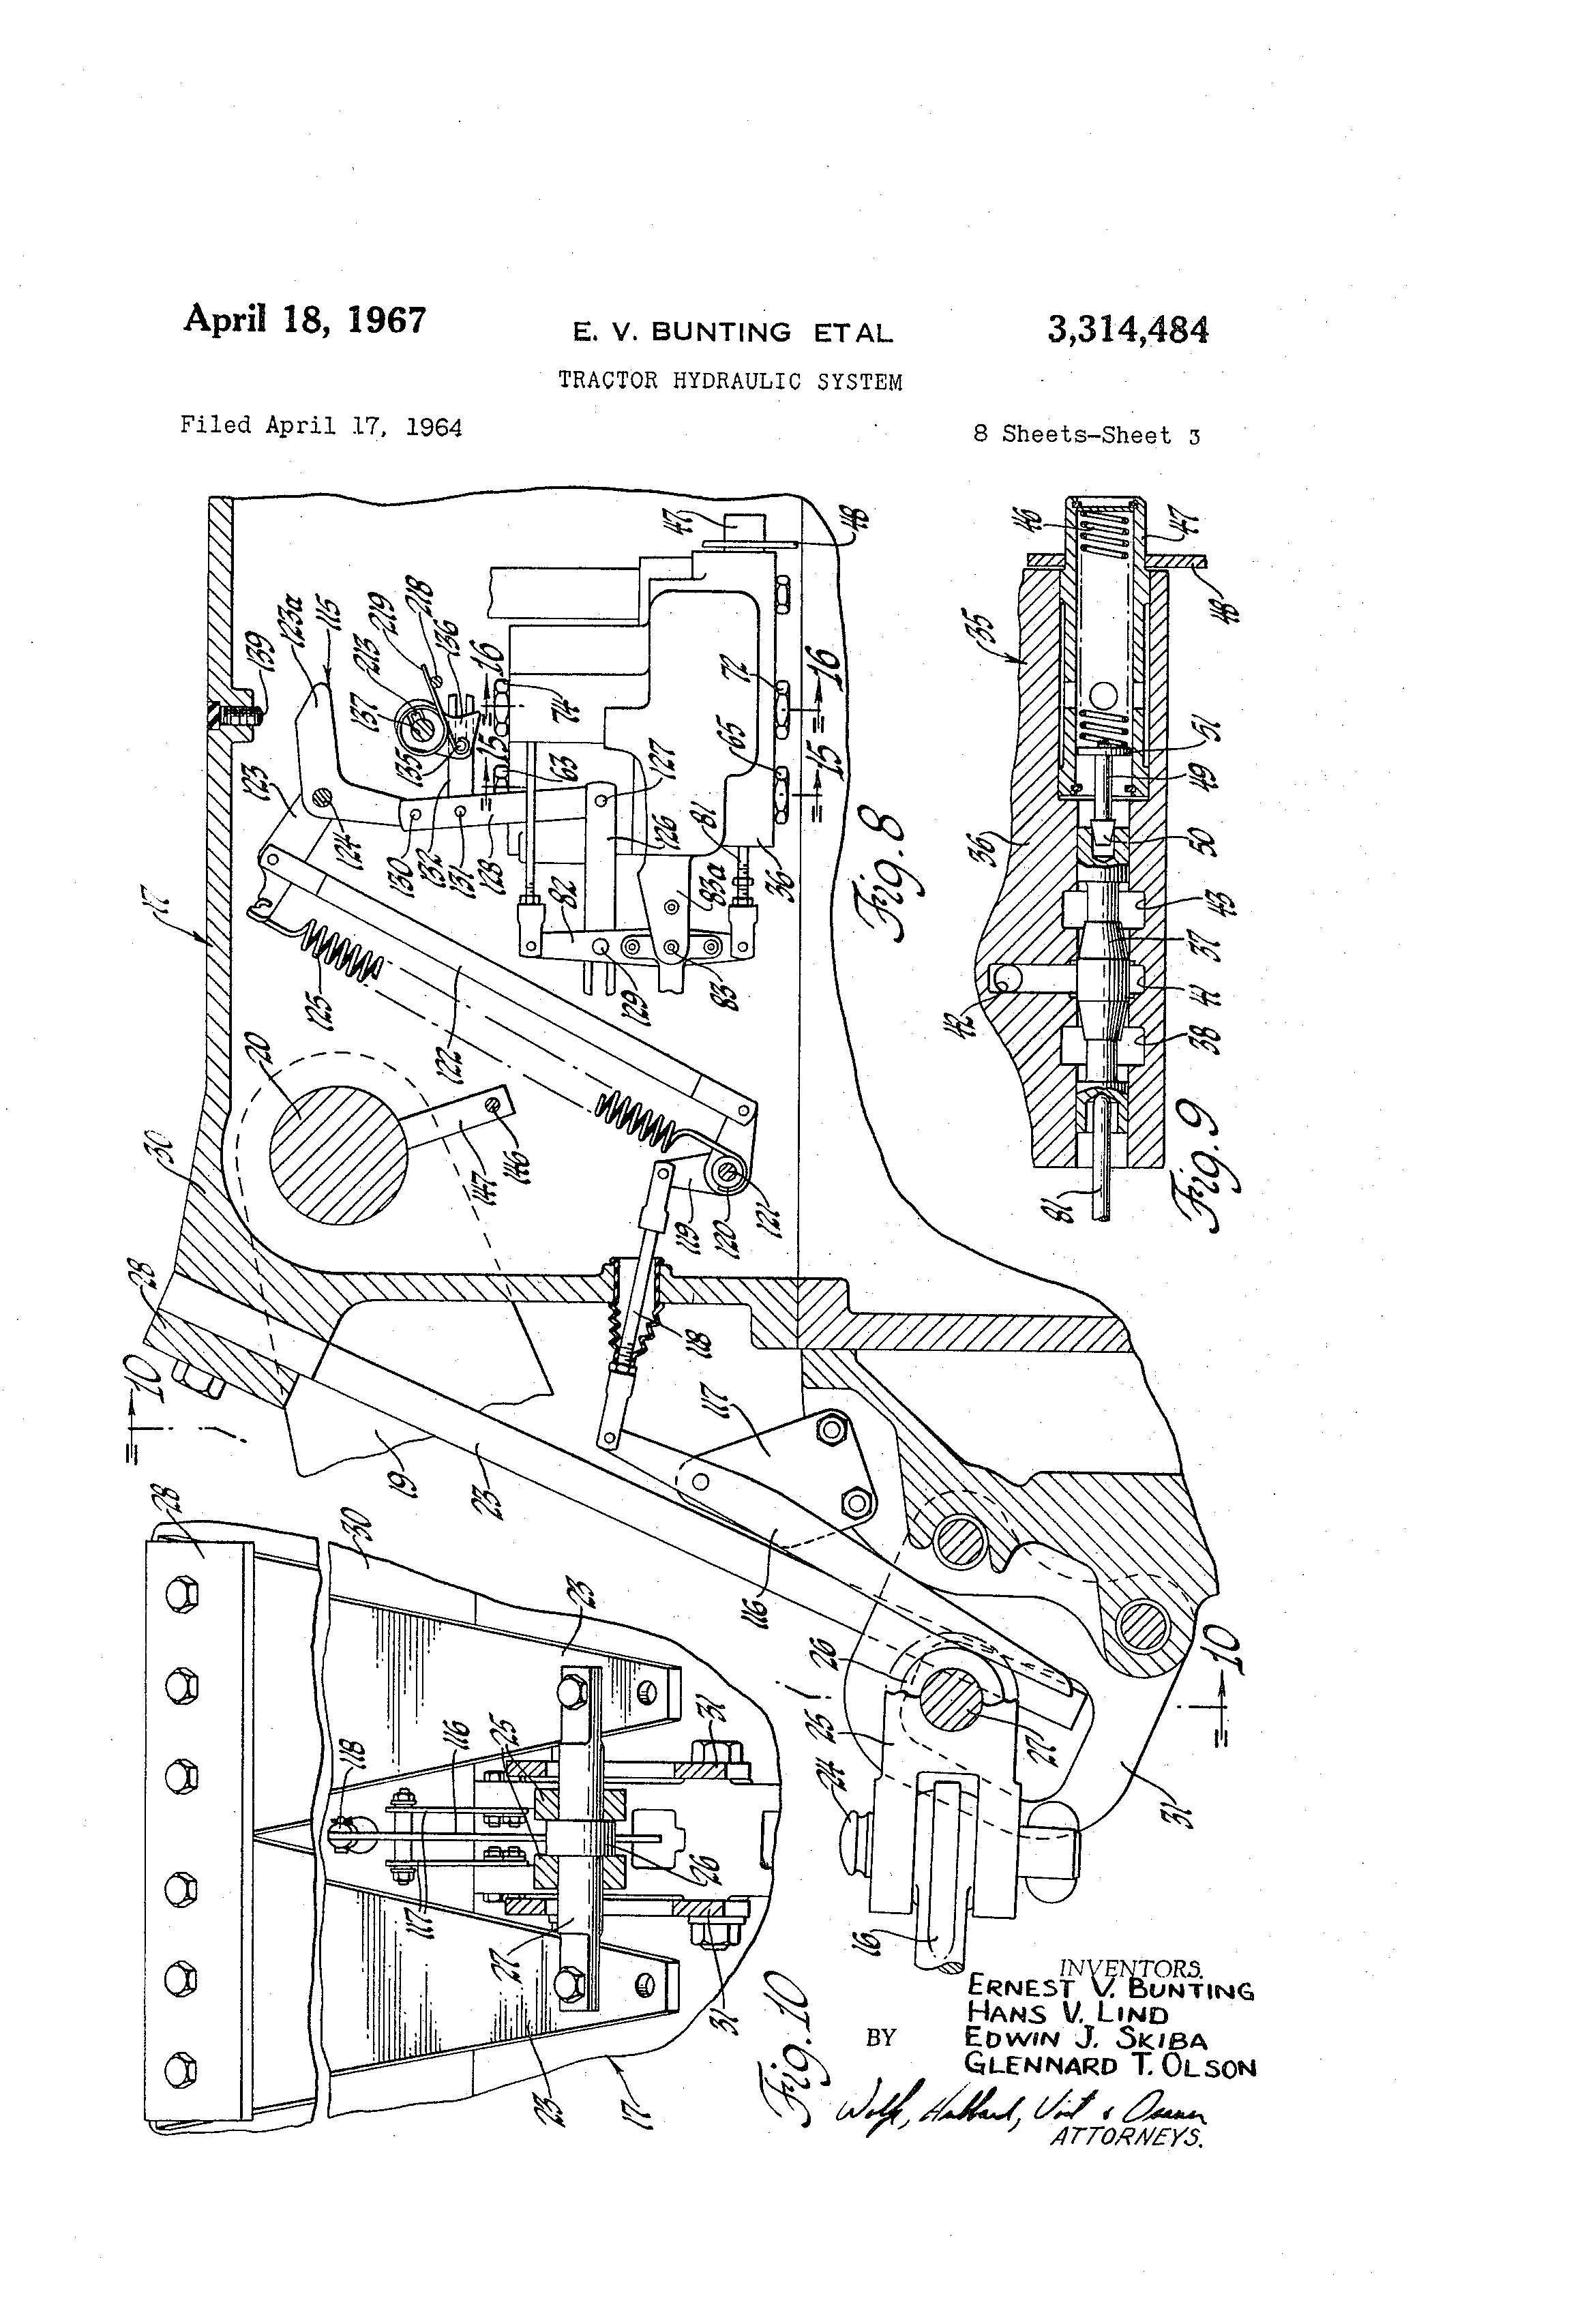 Yanmar Small Engine Parts furthermore Alternator For Ford 4630 Tractor Wiring Diagram in addition 145 Ford Tractor Wiring Diagram also Kubota Ignition Switch Diagram additionally Chelsea Pto Wiring Schematic. on 1967 jd 3020 wiring diagram